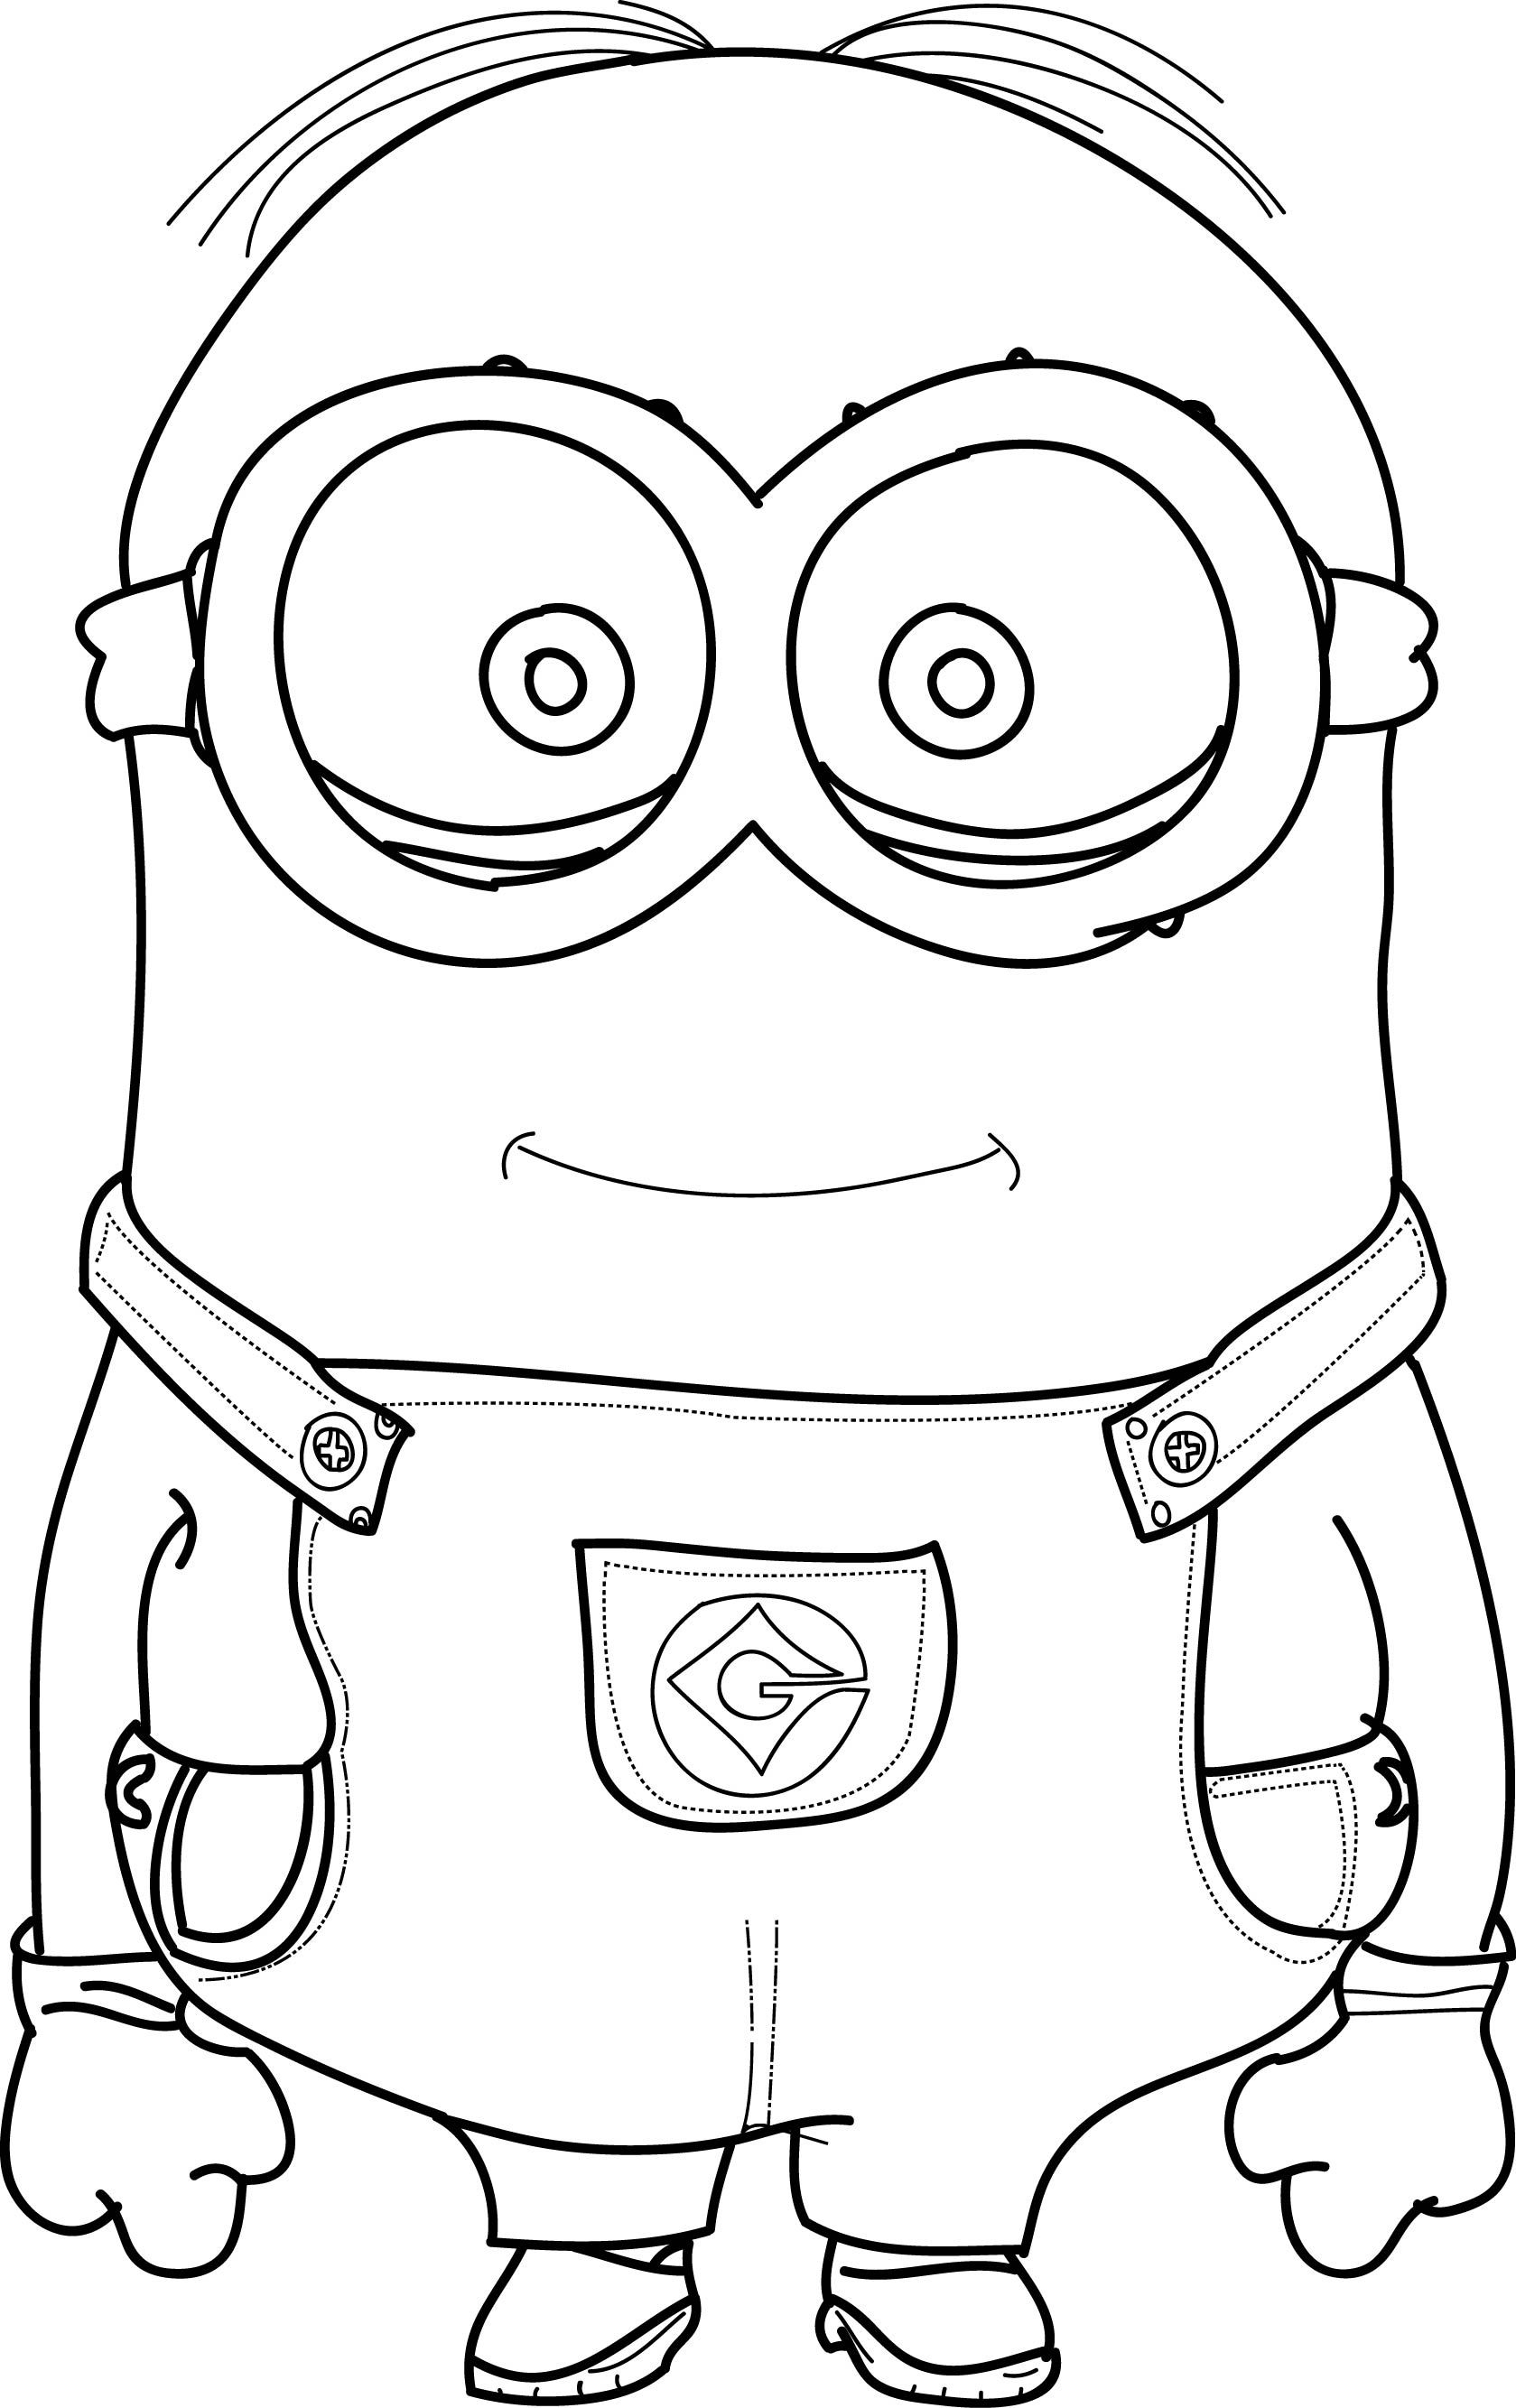 Minions Coloring Pages | wecoloringpage | Pinterest ...